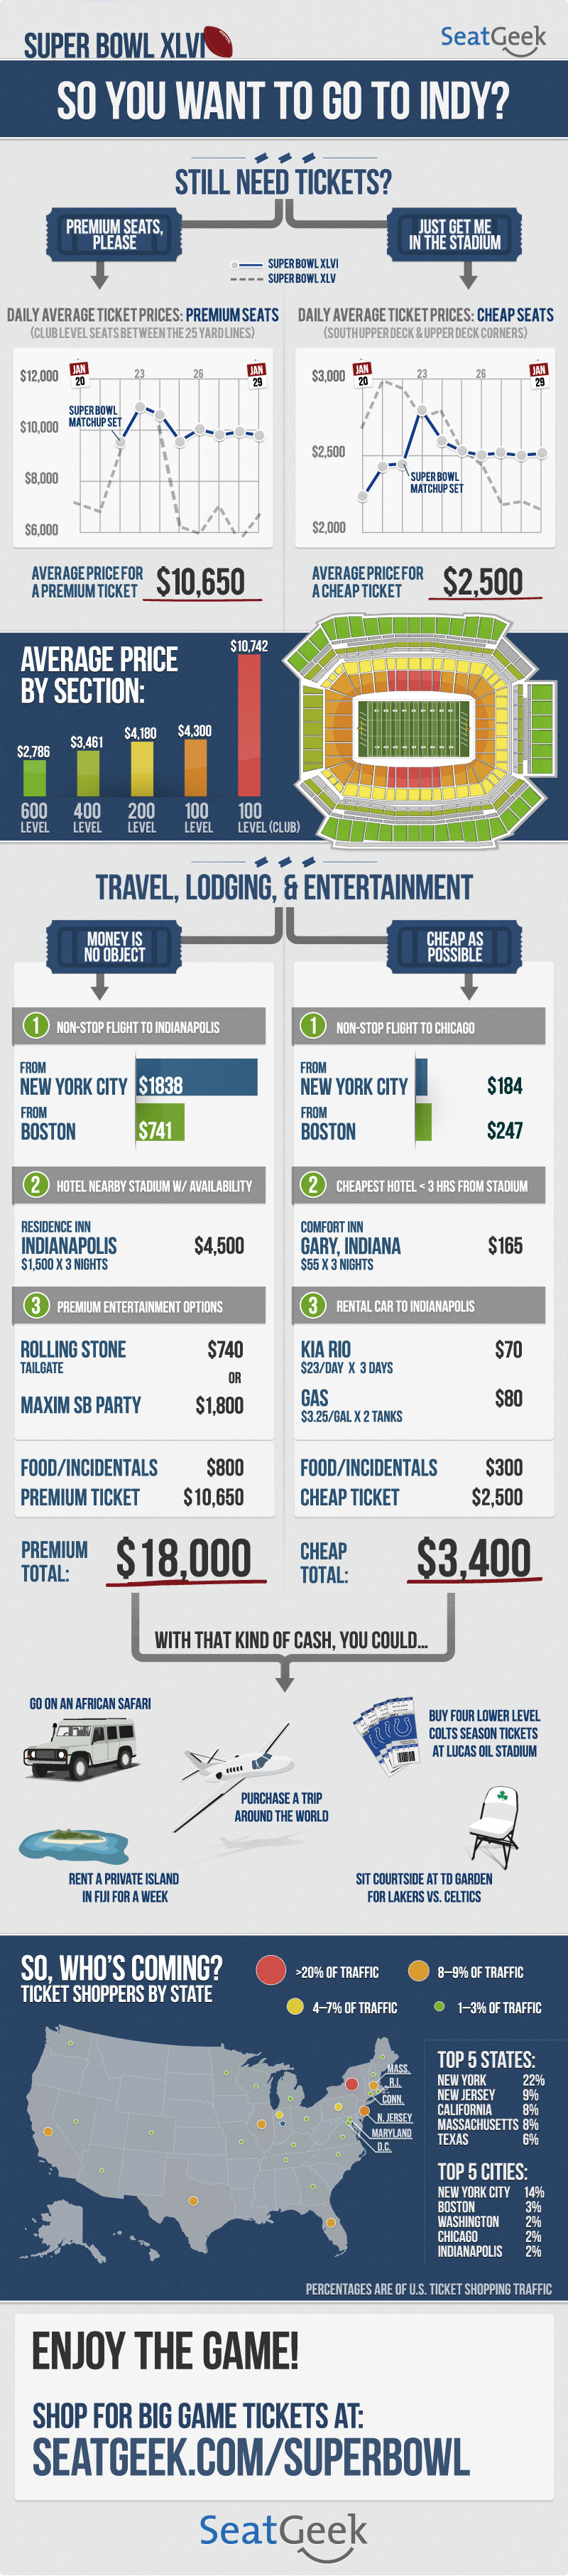 SeatGeek Super Bowl XLVI Infographic on Travel, Hotel and Ticket Prices